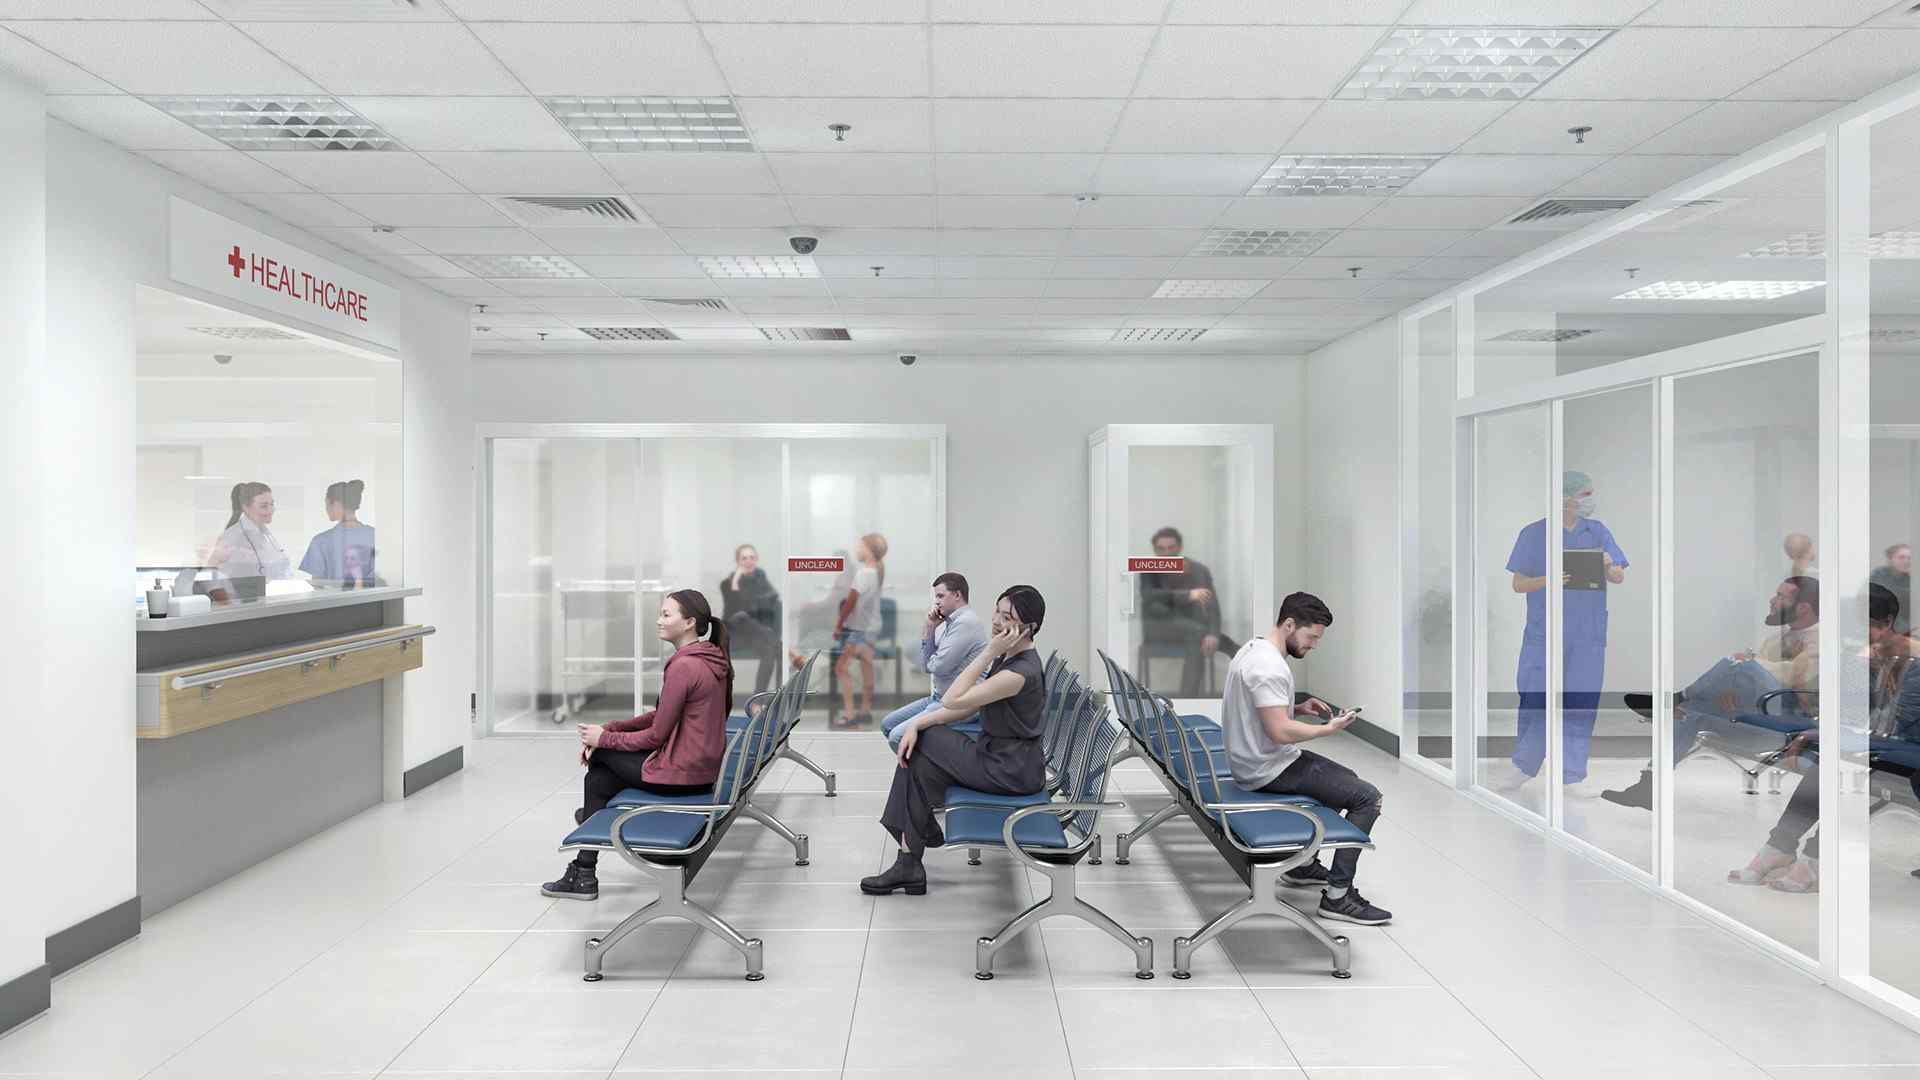 Medical waiting room space dividers